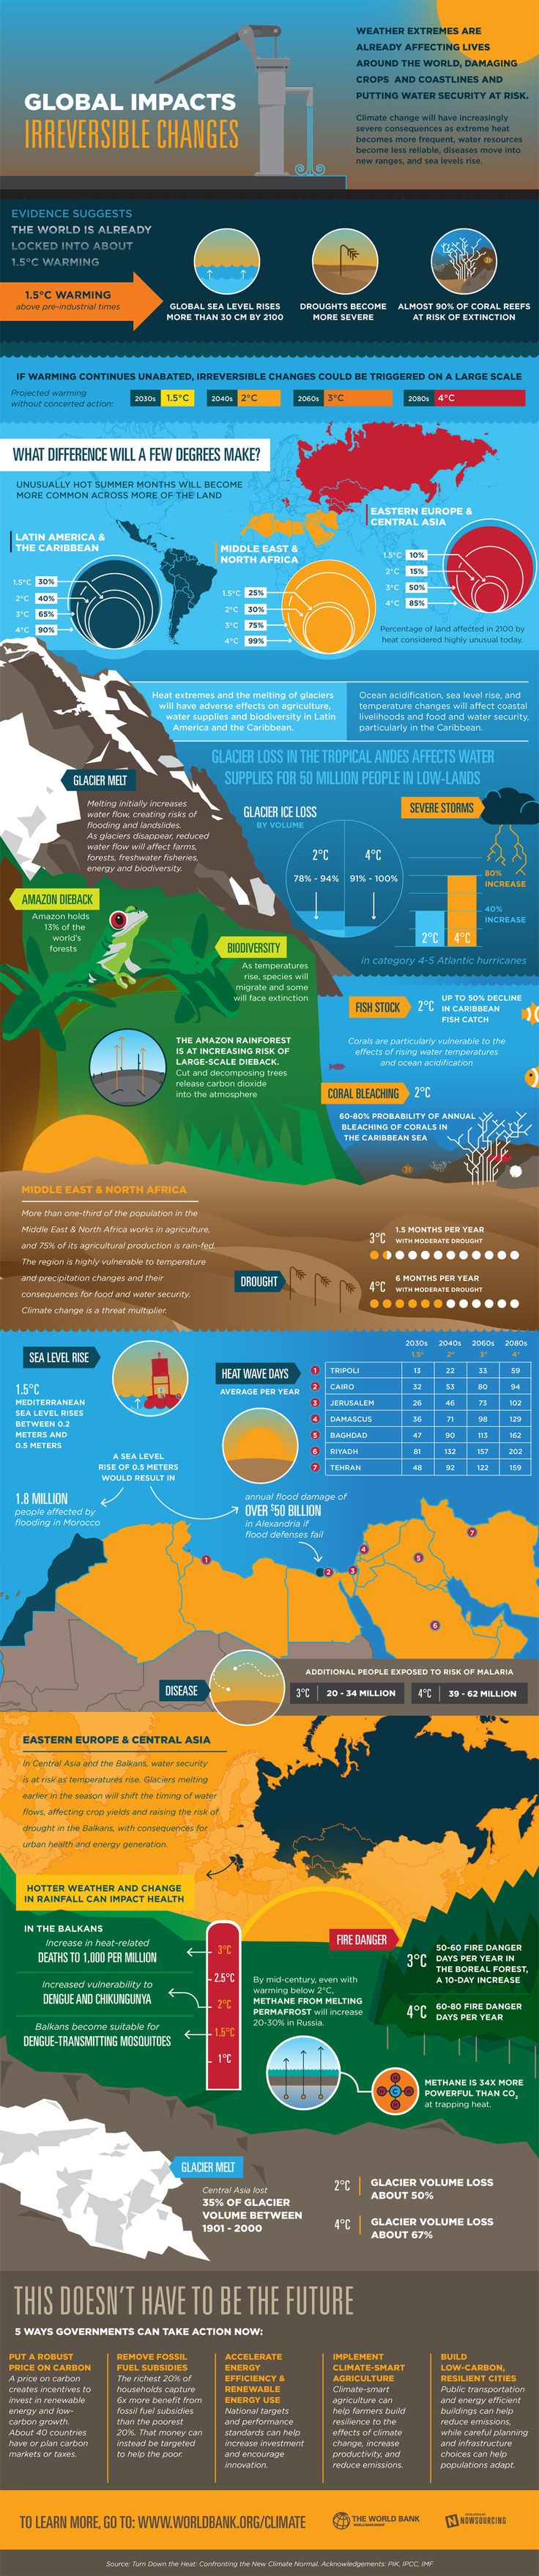 What Climate Change Means for Latin America, Middle East and Central Asia #infographic #Economy #ClimateChange